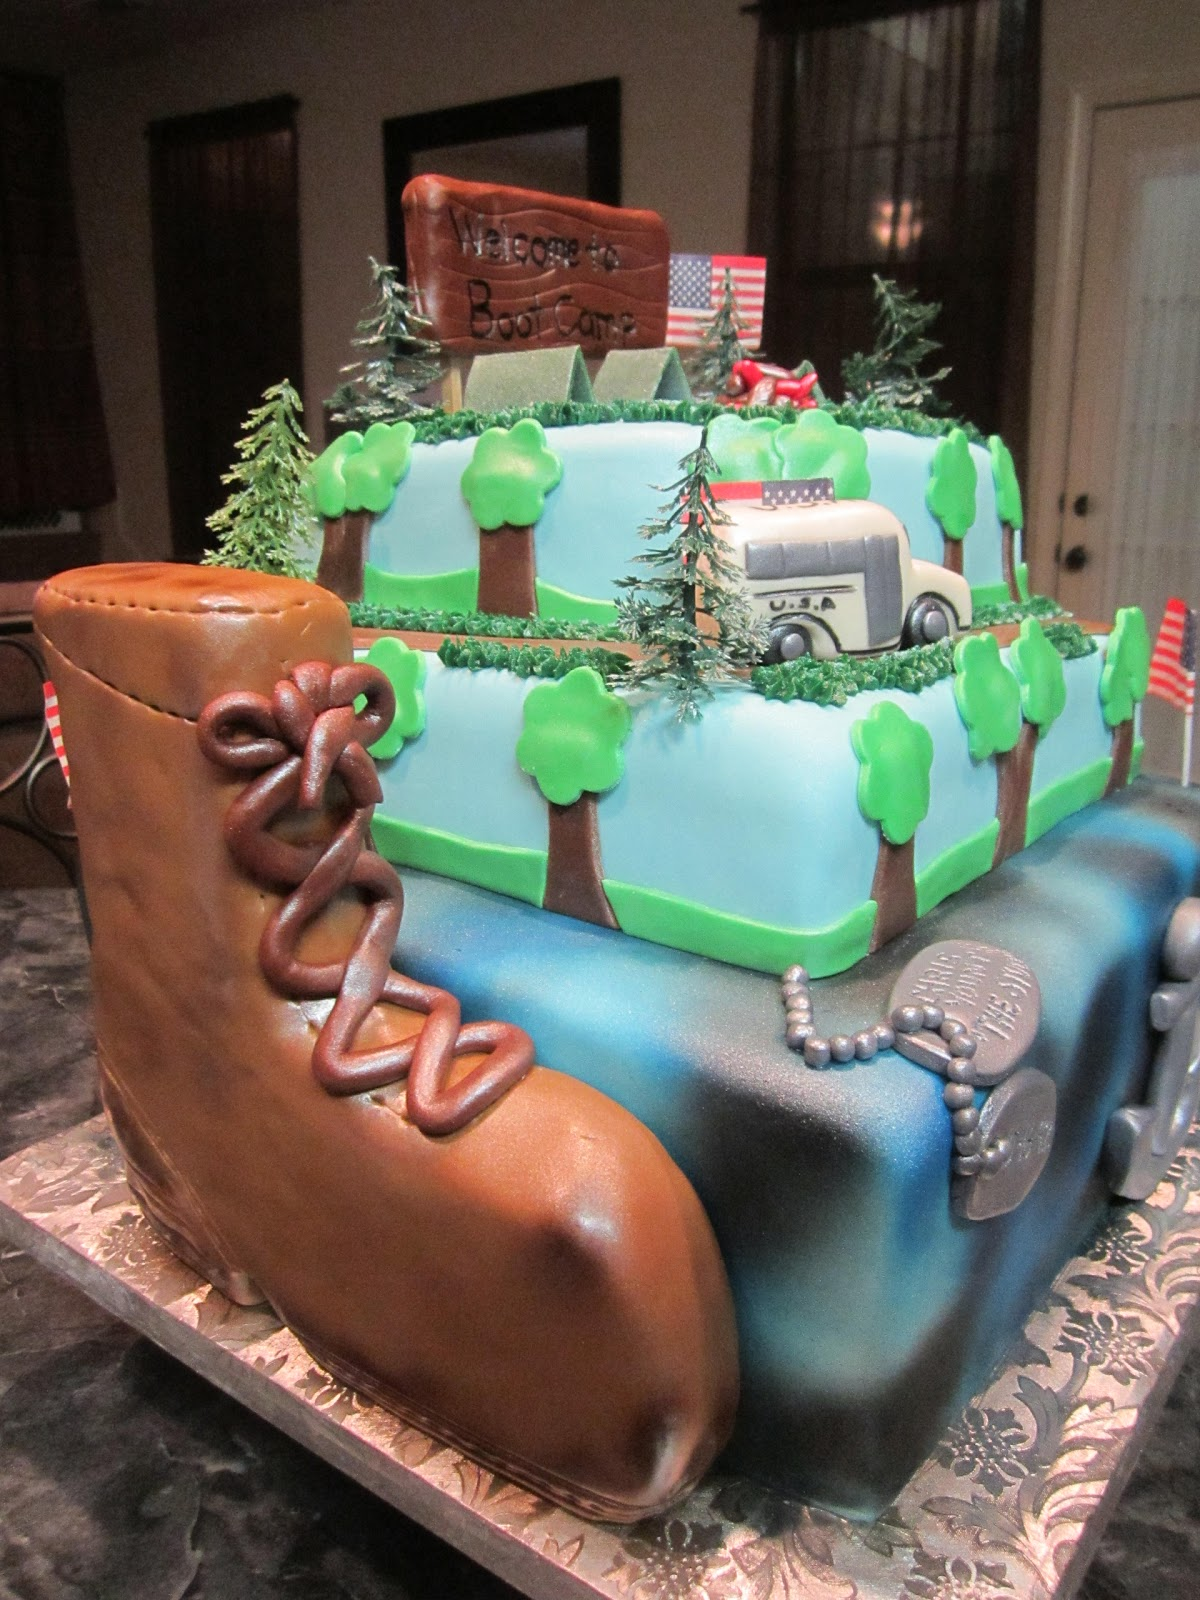 Boot Camp Cake W Obstacle Course